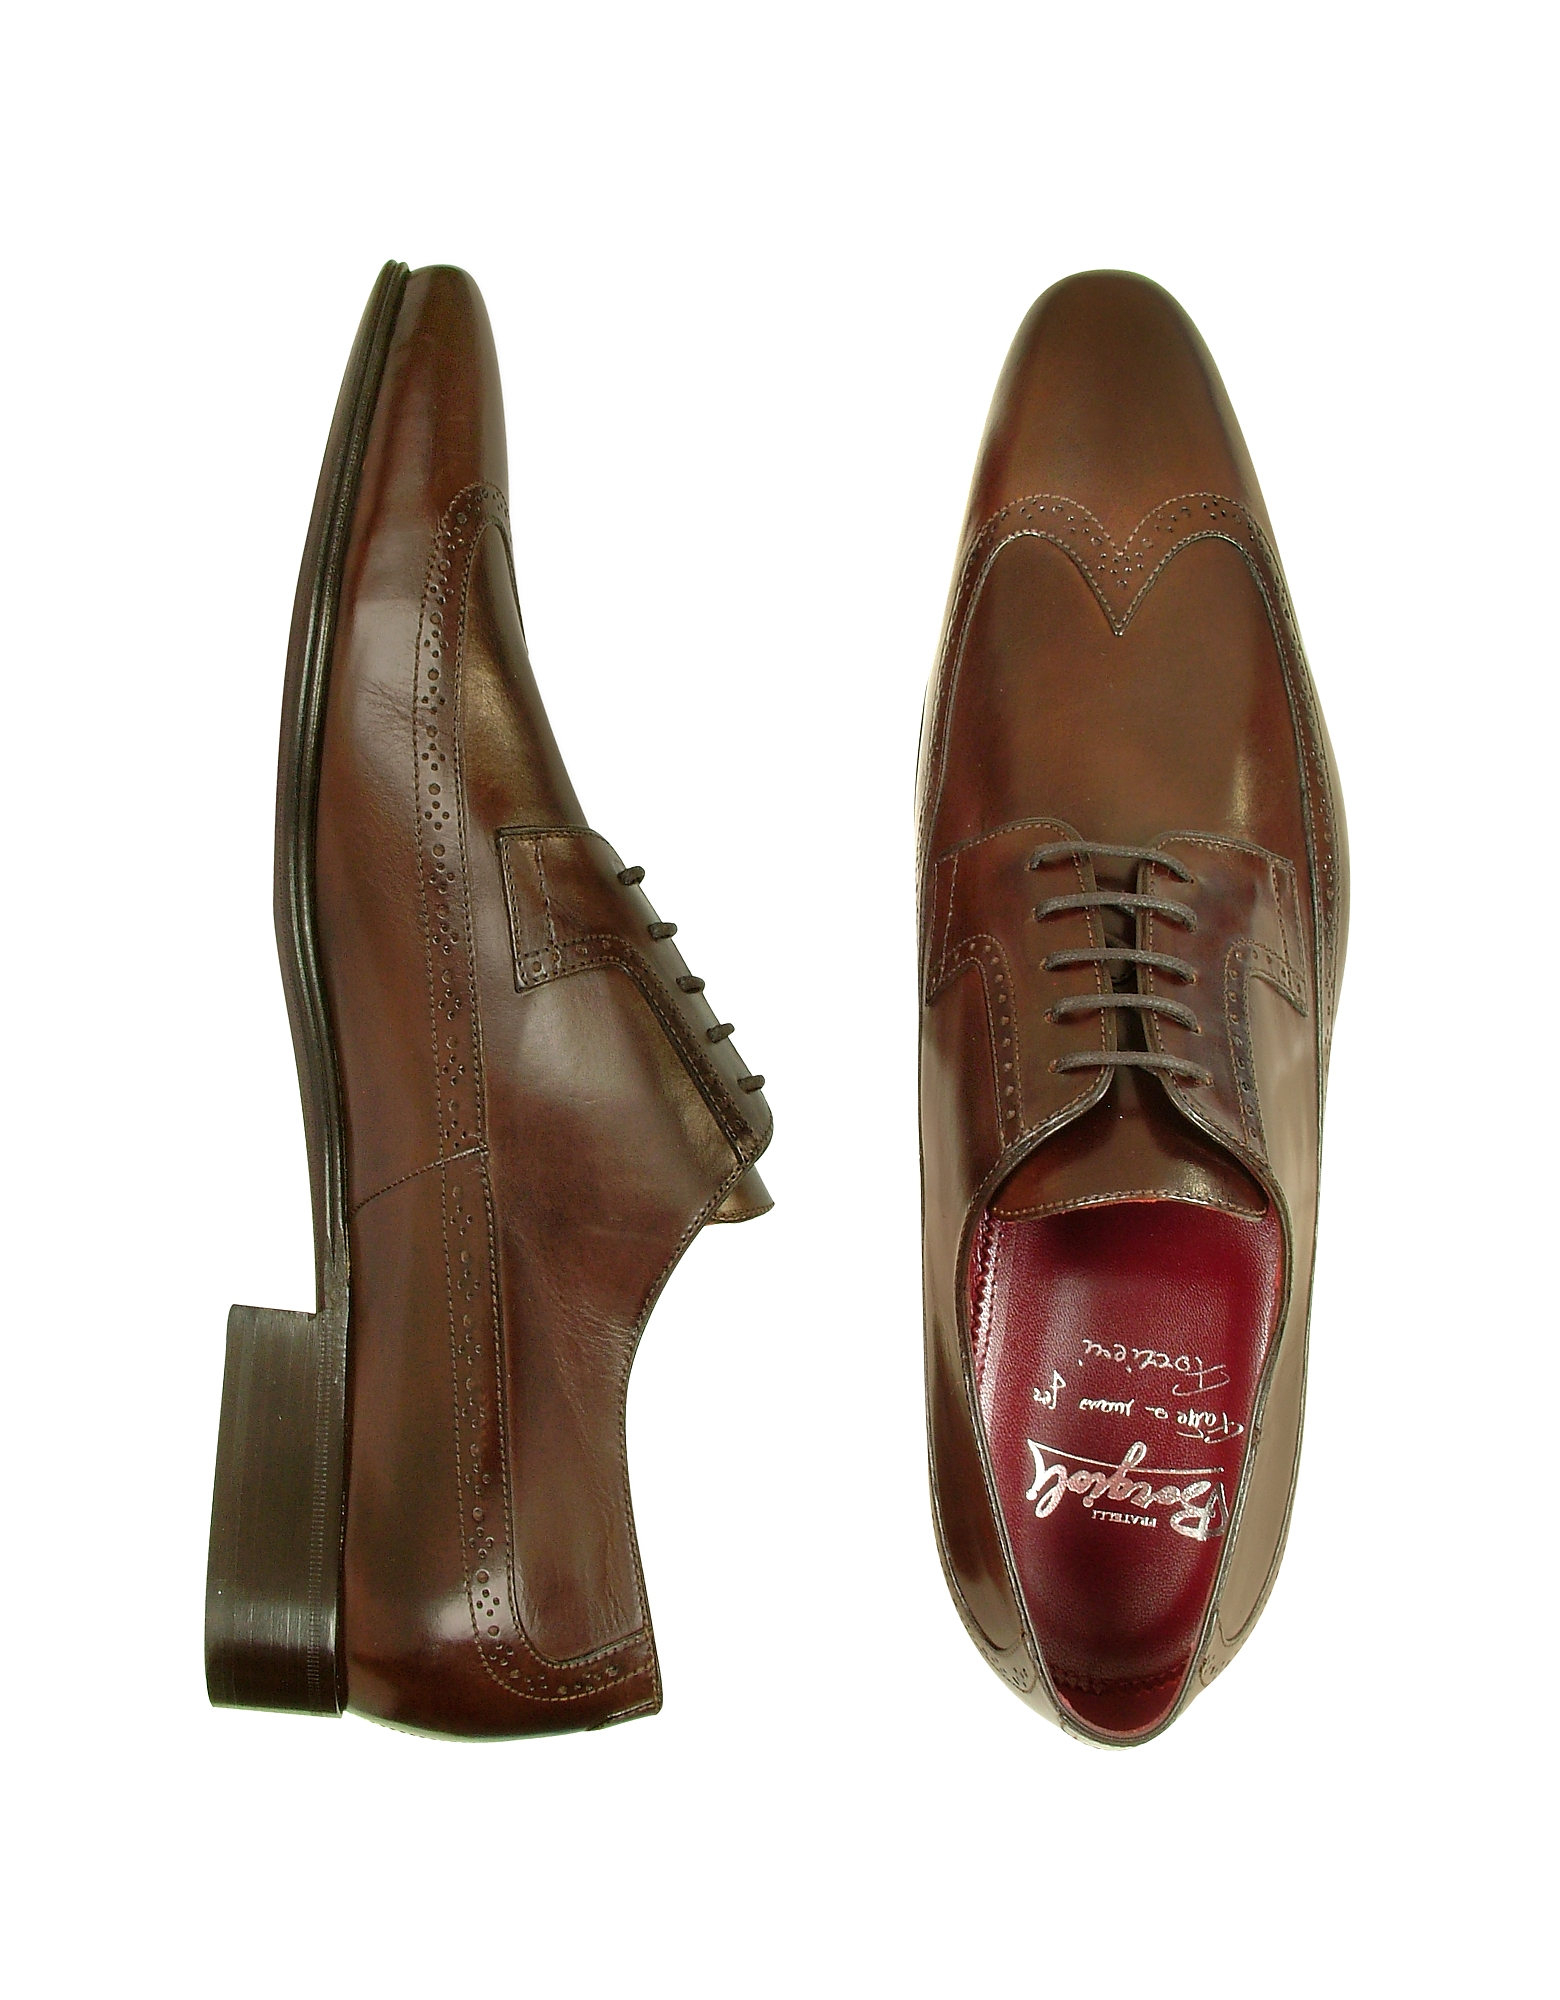 Fratelli Borgioli Shoes, Handmade Brown Italian Leather Wingtip Dress Shoes